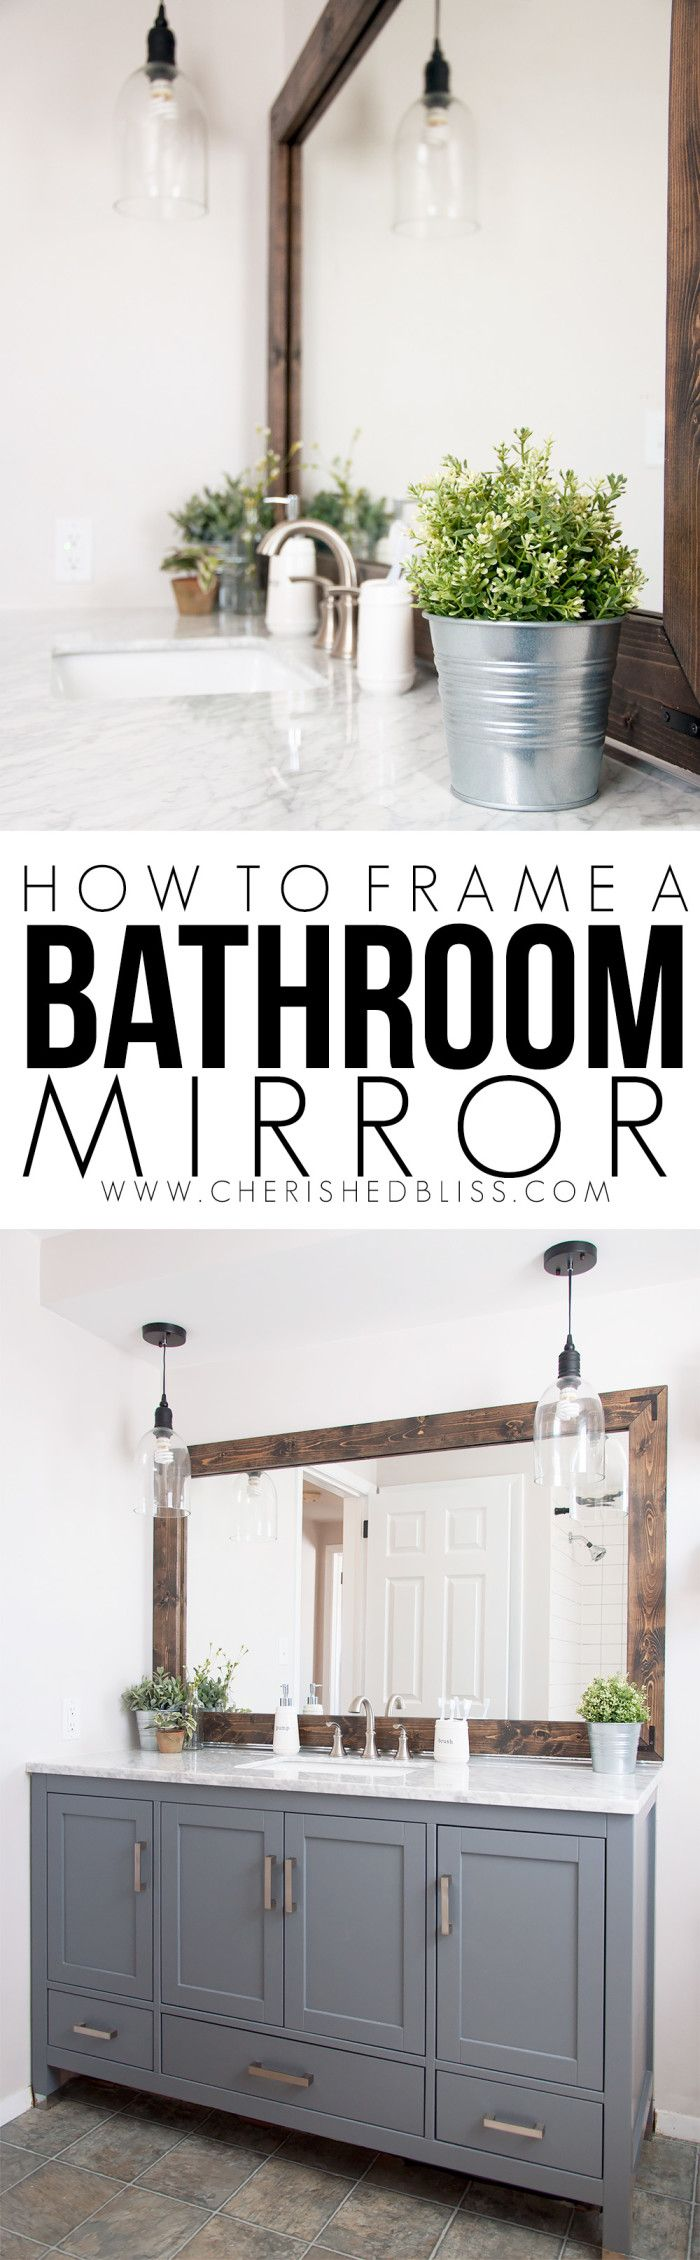 How to Frame a Bathroom Mirror | Bathroom mirrors, Tutorials and Easy